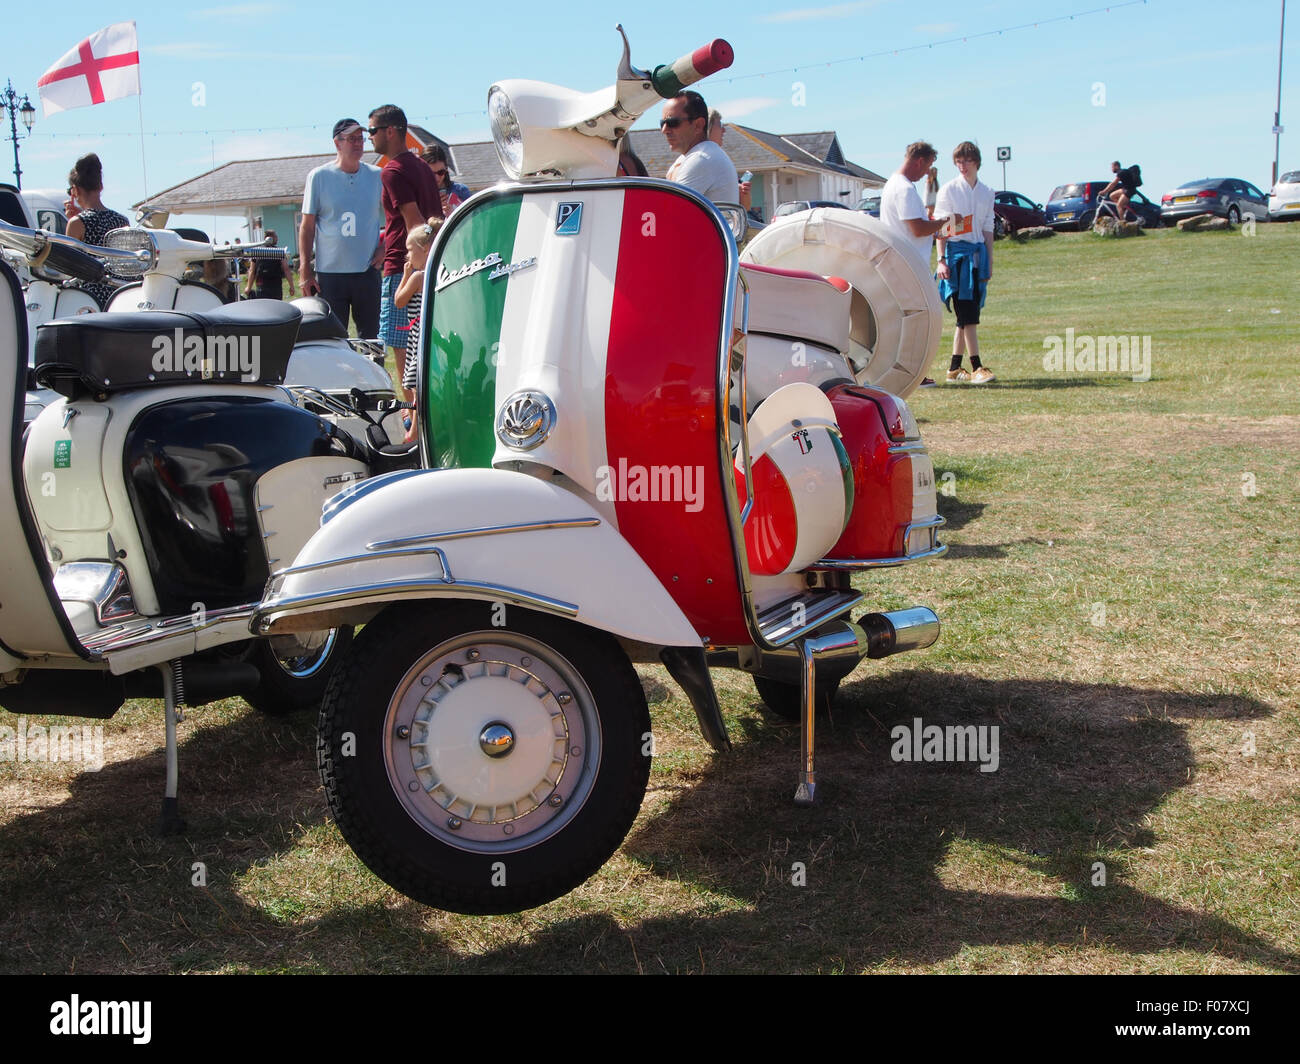 A Vespa Super Scooter painted in the colours of il Tricolore